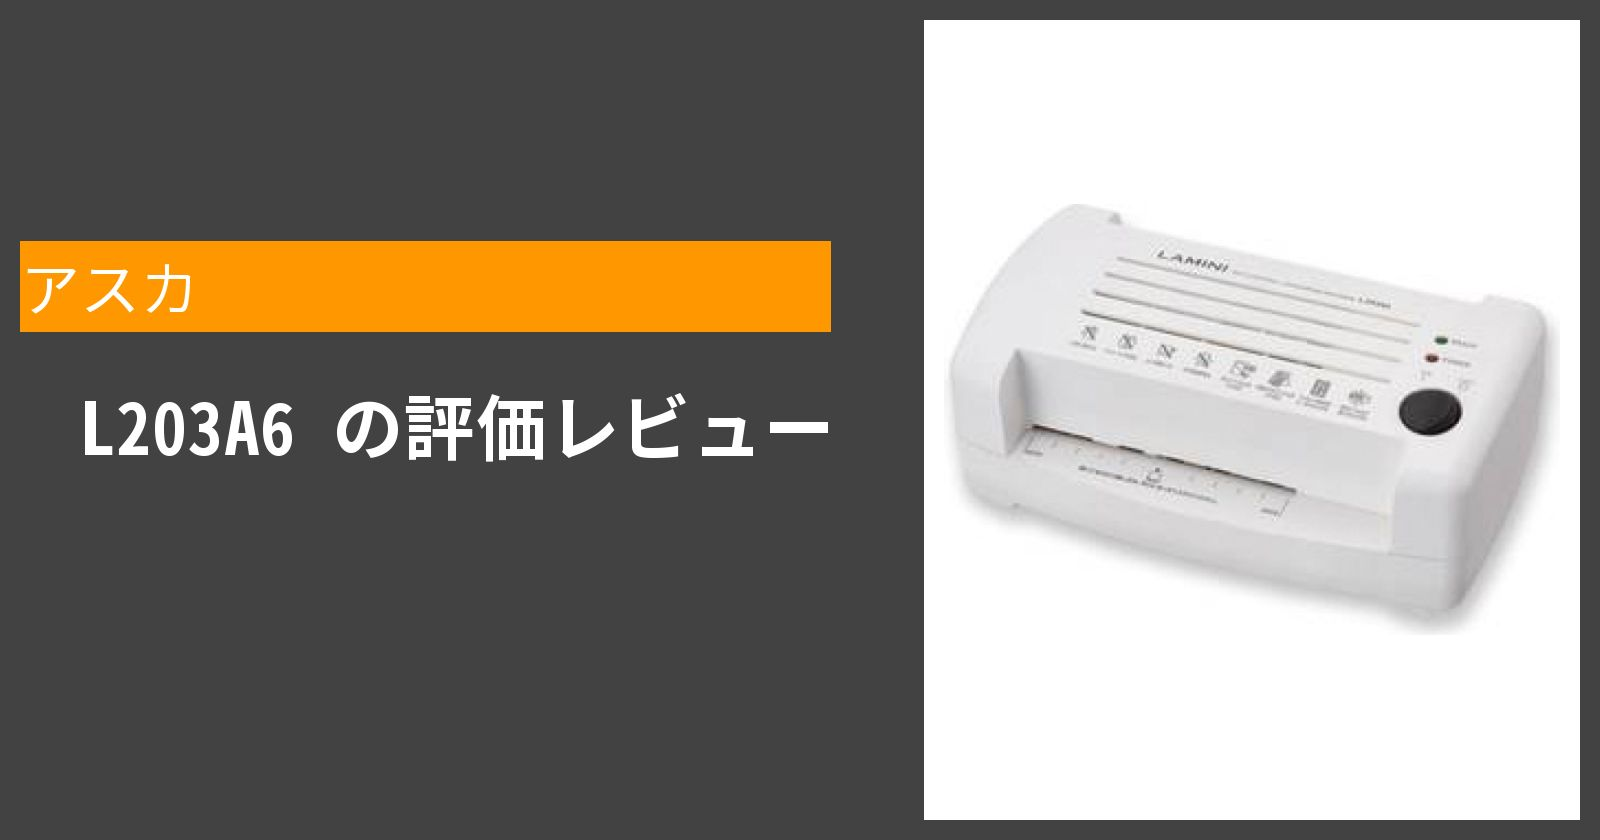 L203A6を徹底評価